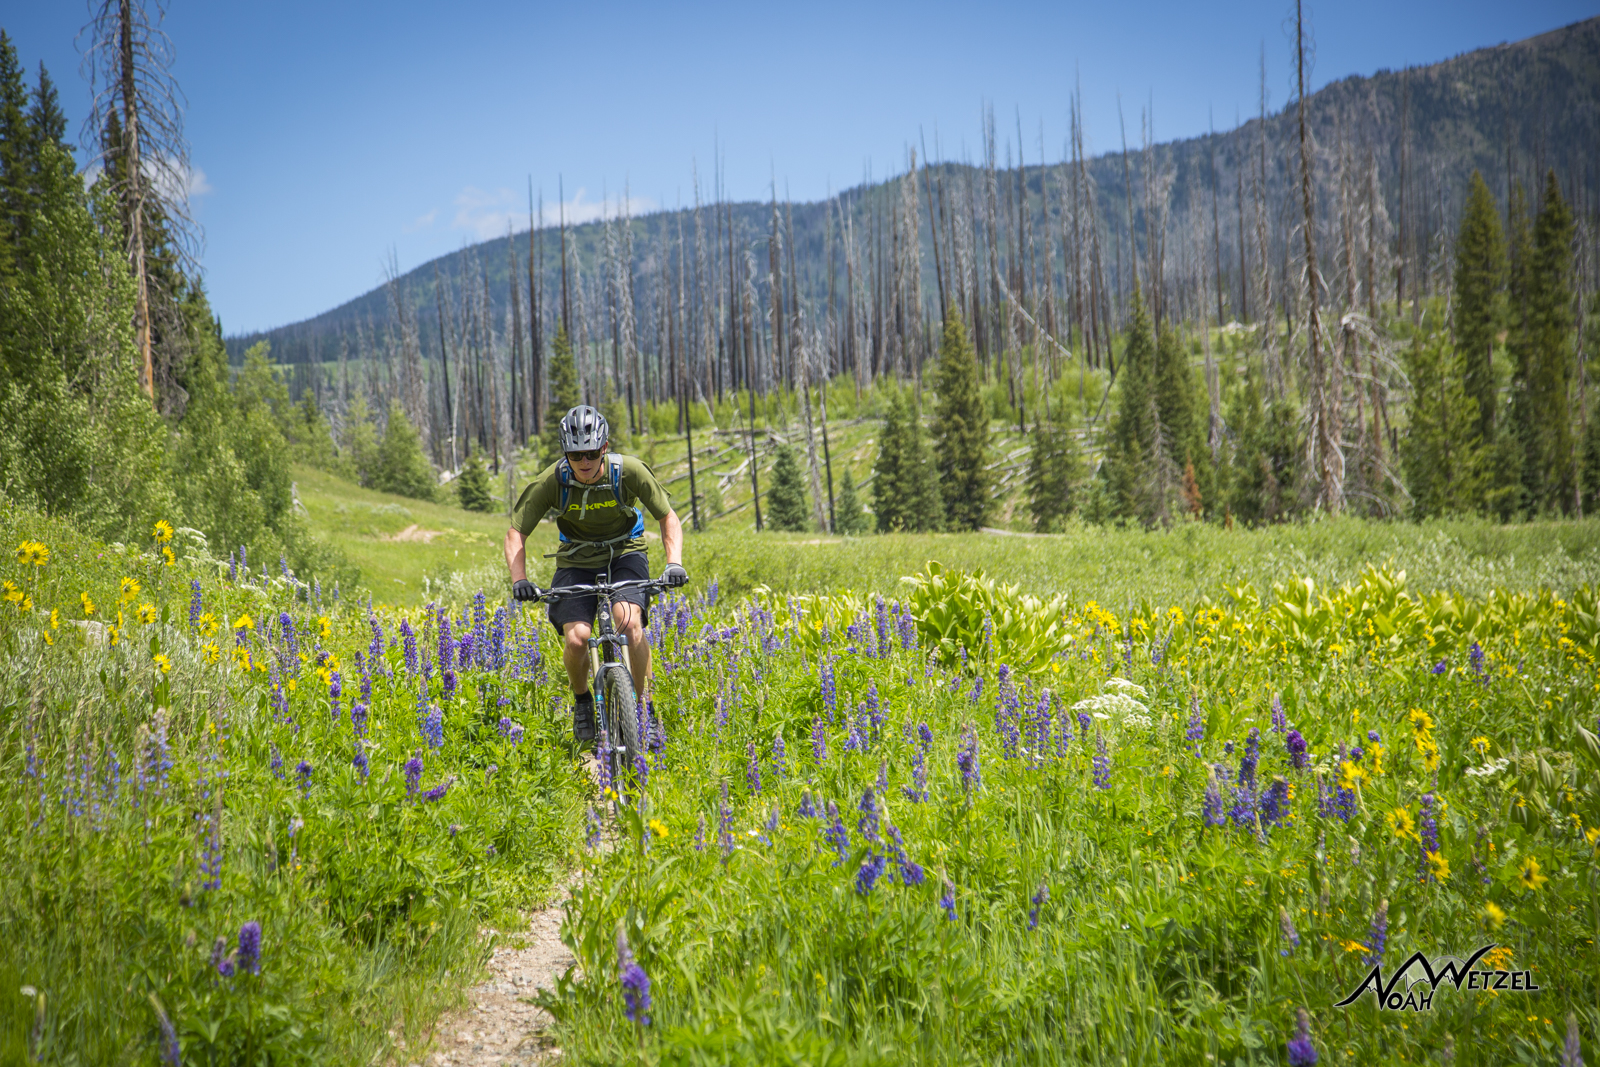 Beau Schecter riding through a burn zone and wildflowers on the Diamond Park Trail (1189) in North Routt County.